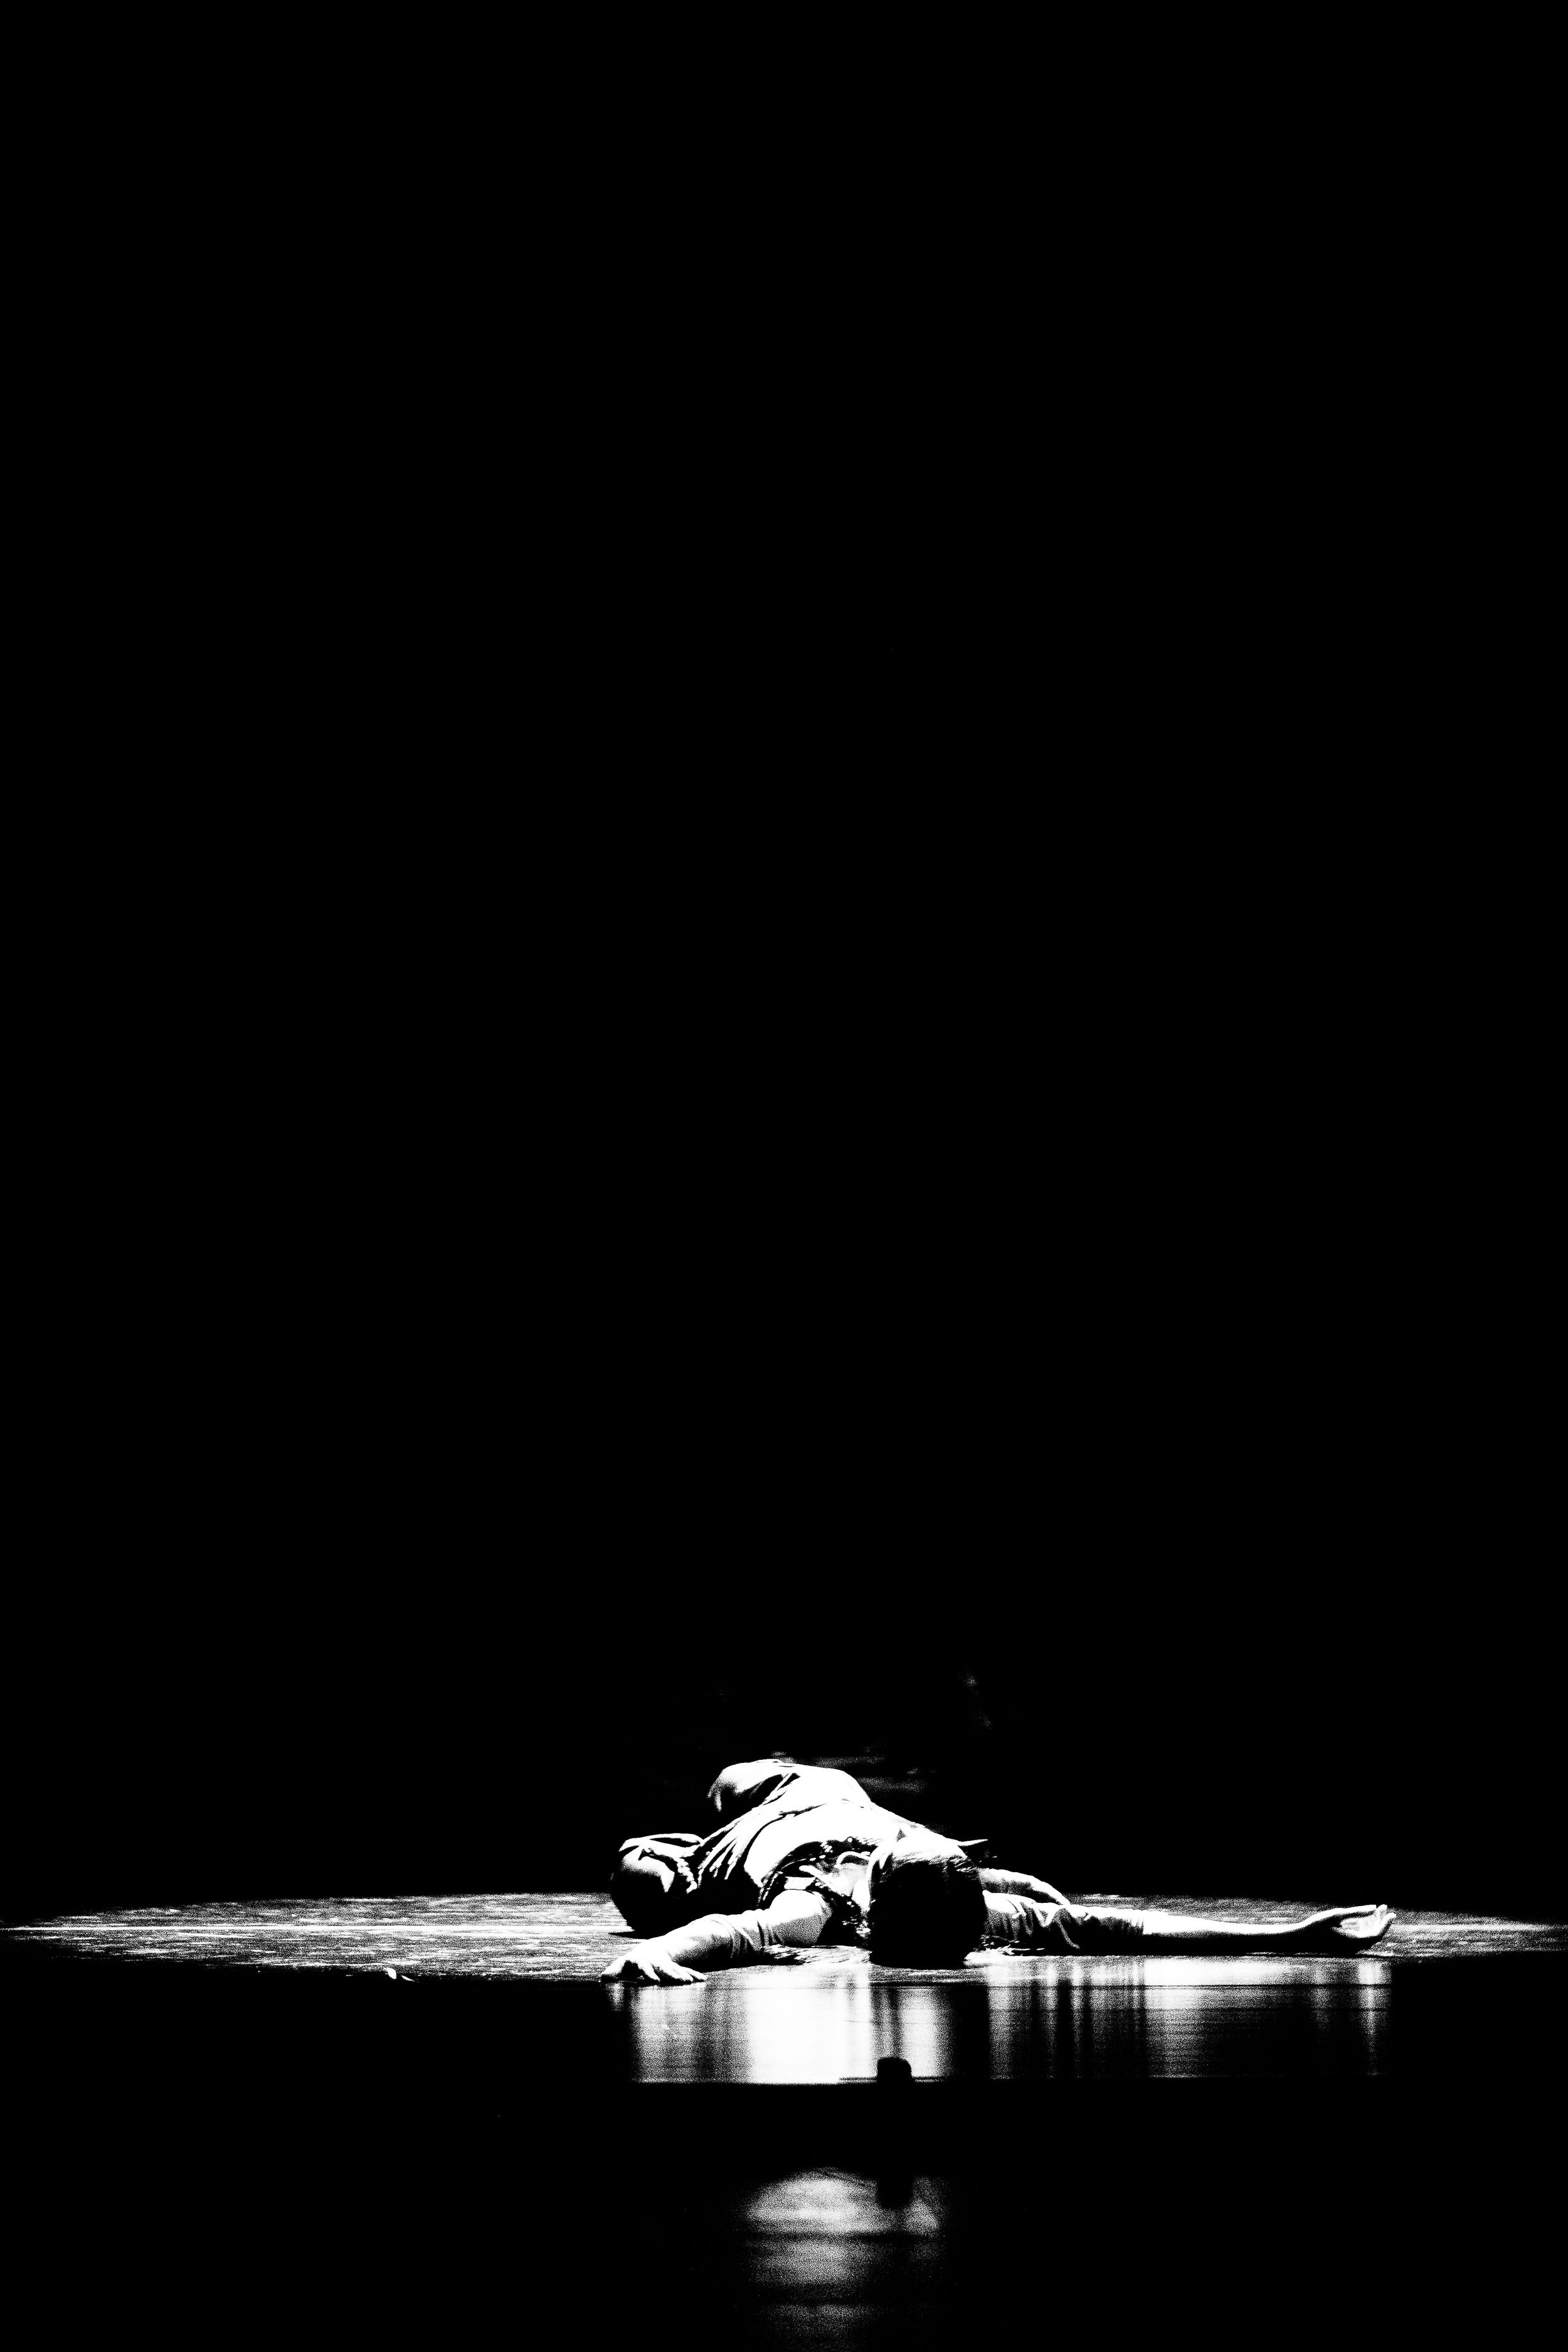 diana vishneva chicago sleeping beauty dreams